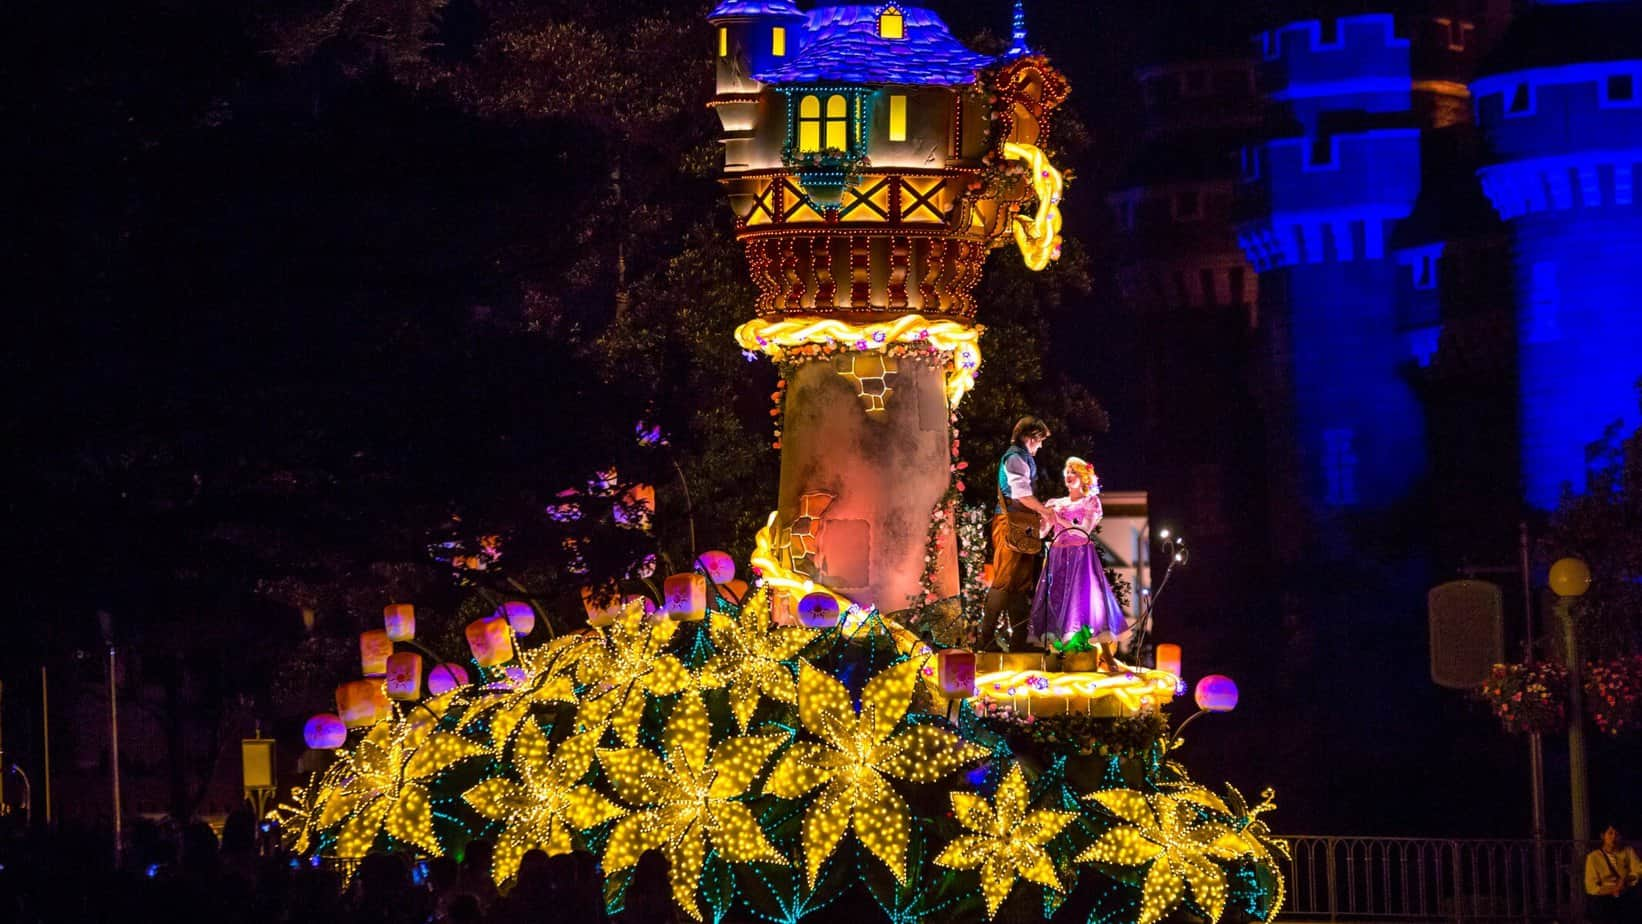 Tangled float in Tokyo Disneyland Electrical Parade Dreamlights. Photo ...